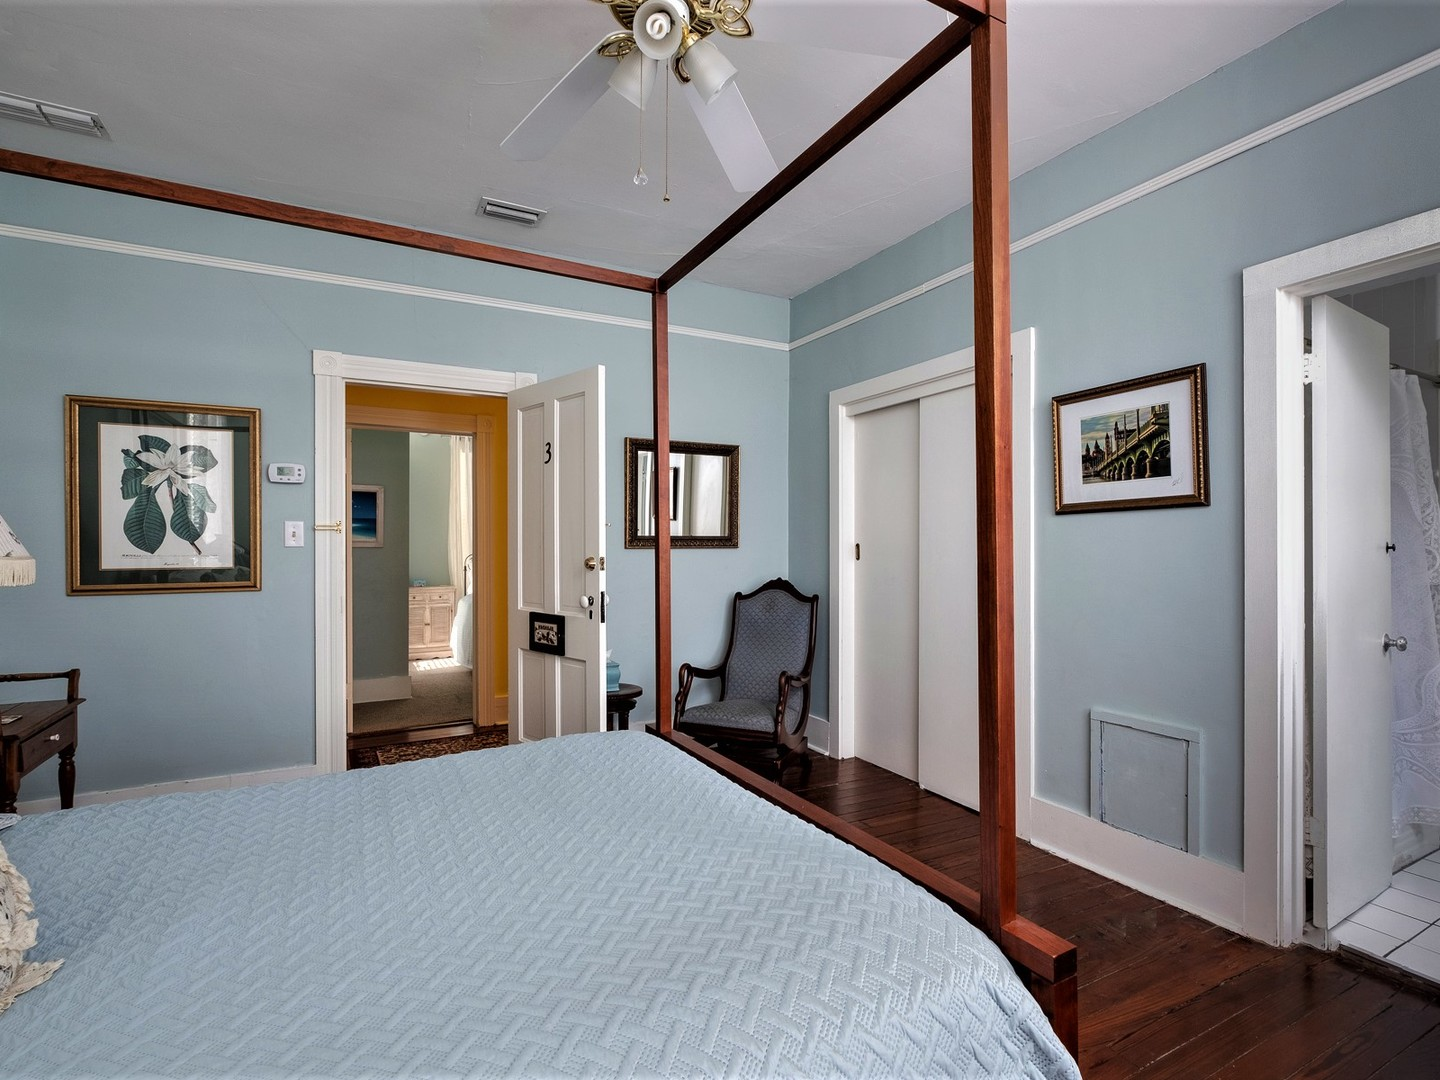 A bedroom with a bed in a room at Victorian House B&B.